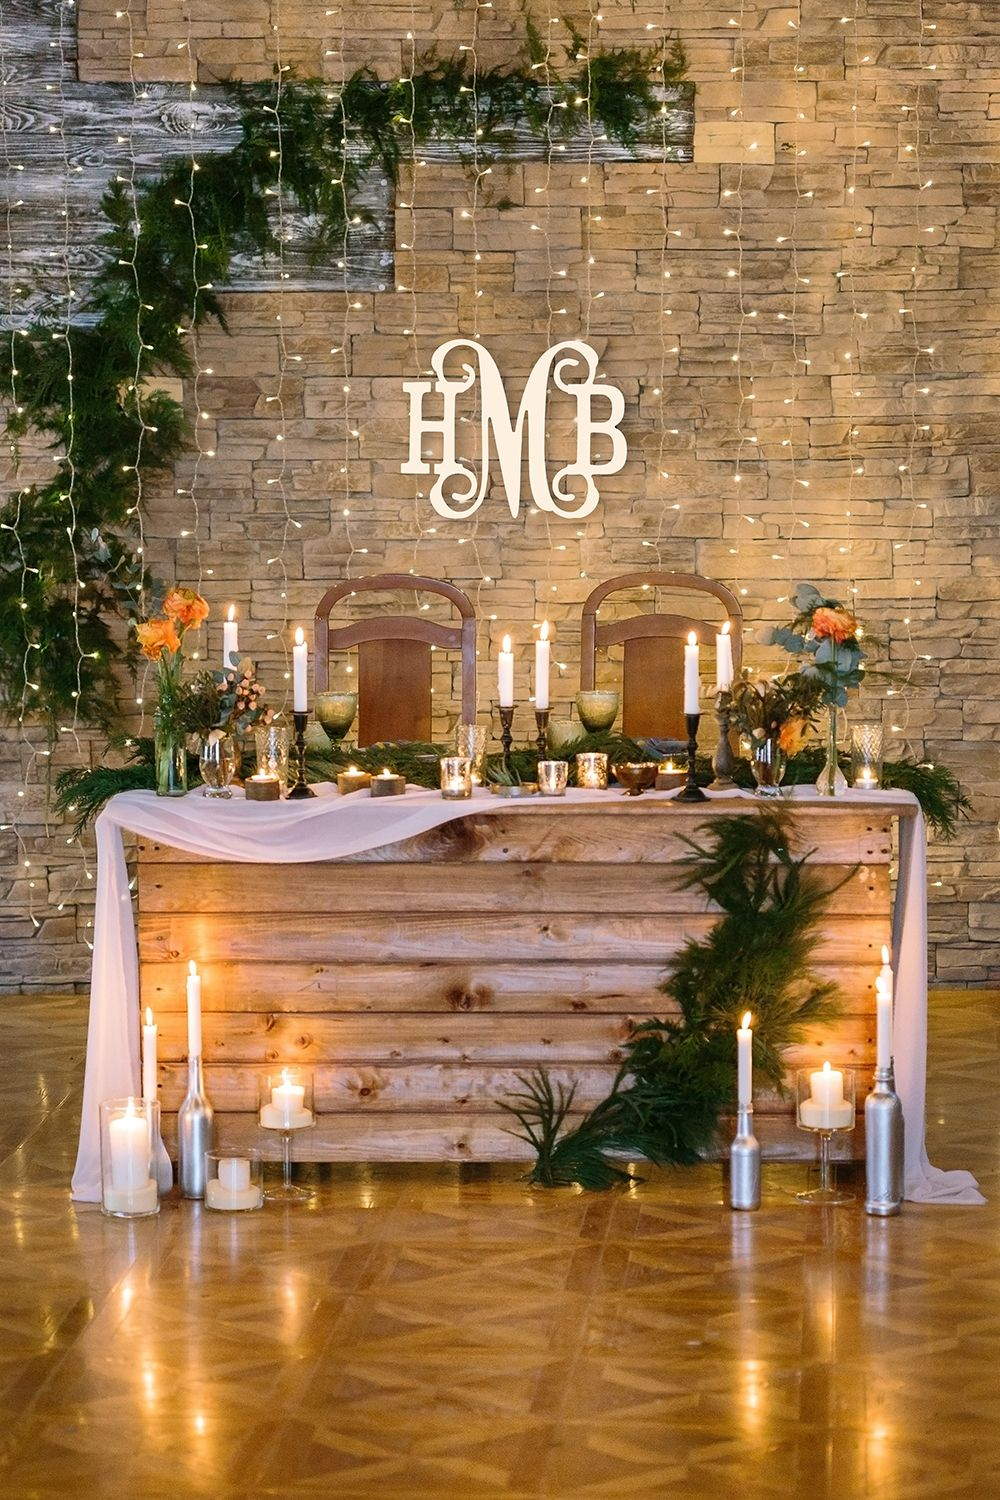 Personalized Small Three Initials Classic Vine Wood Monogram ~ 14 in. high